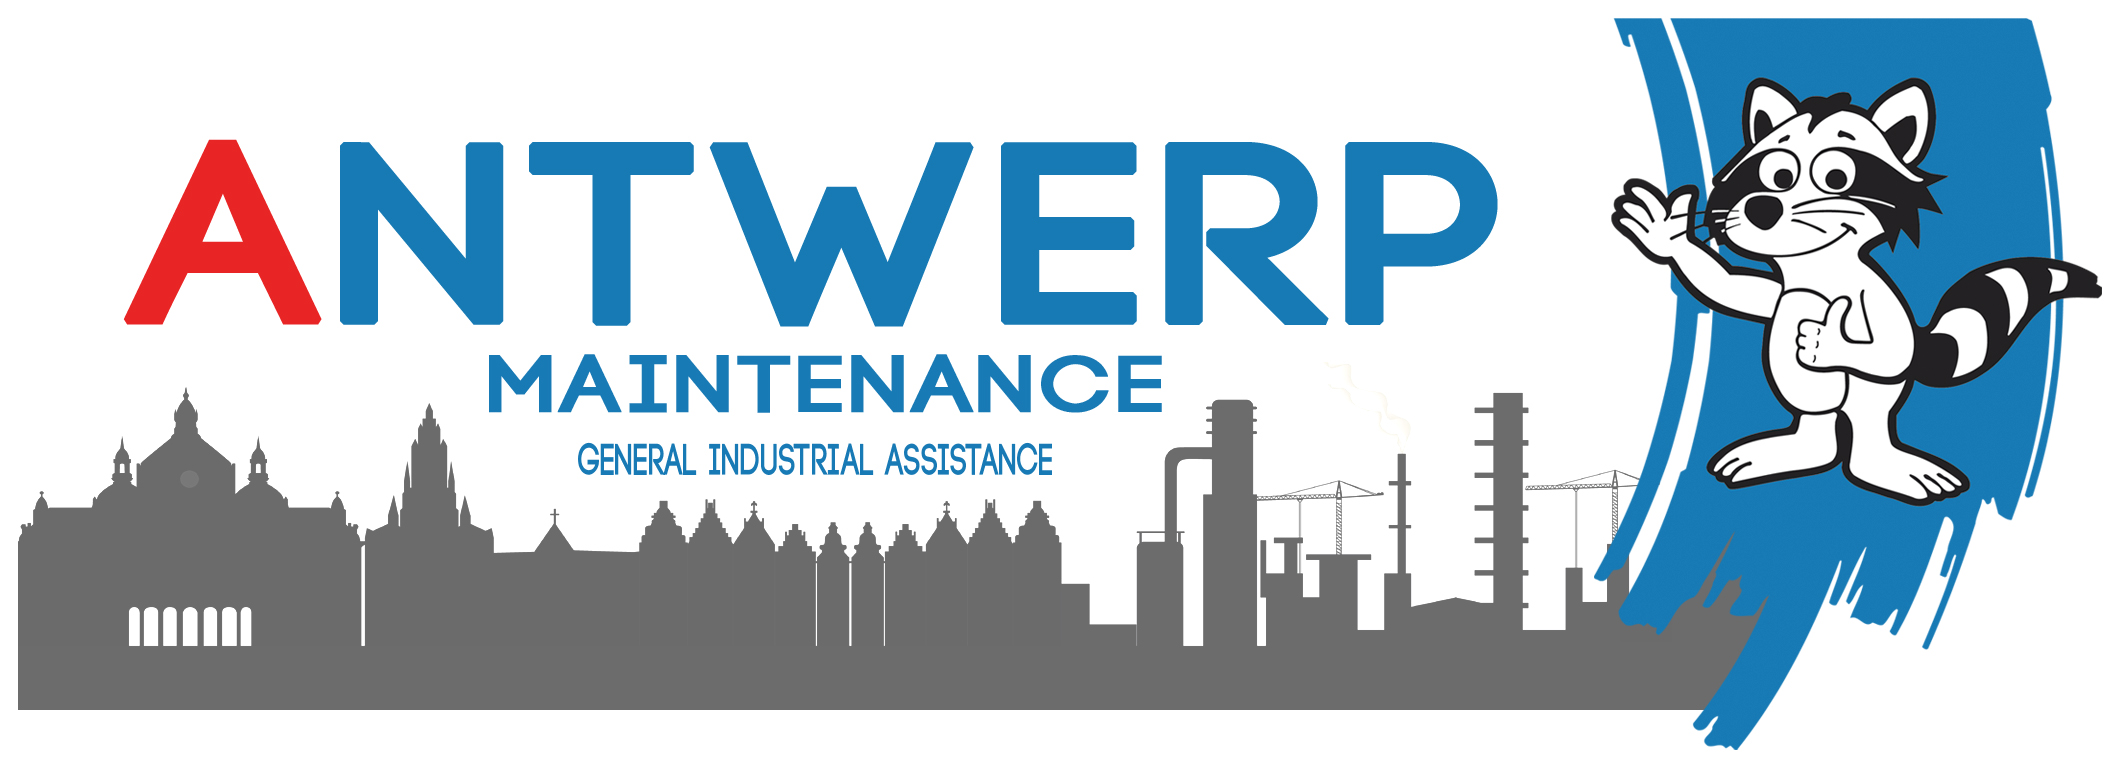 Antwerp Maintenance